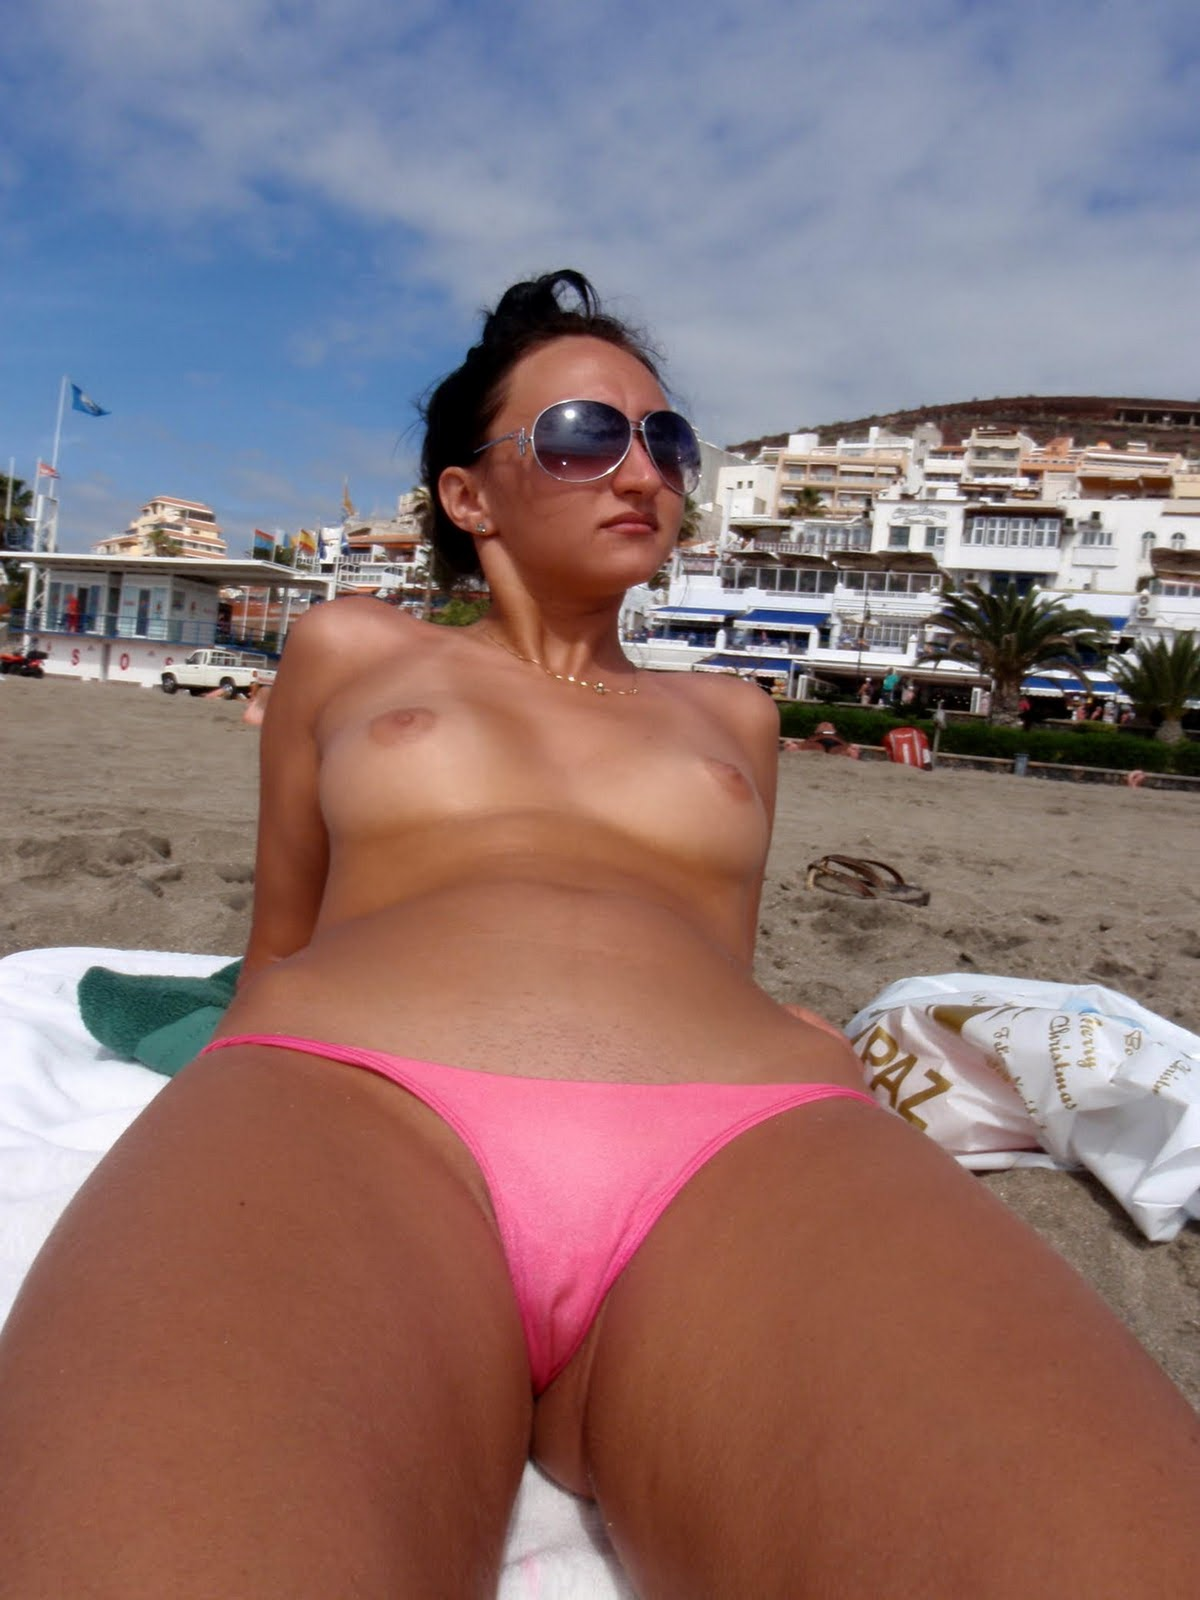 Sexy European Brunette Topless On Vacation At The Beach -5008